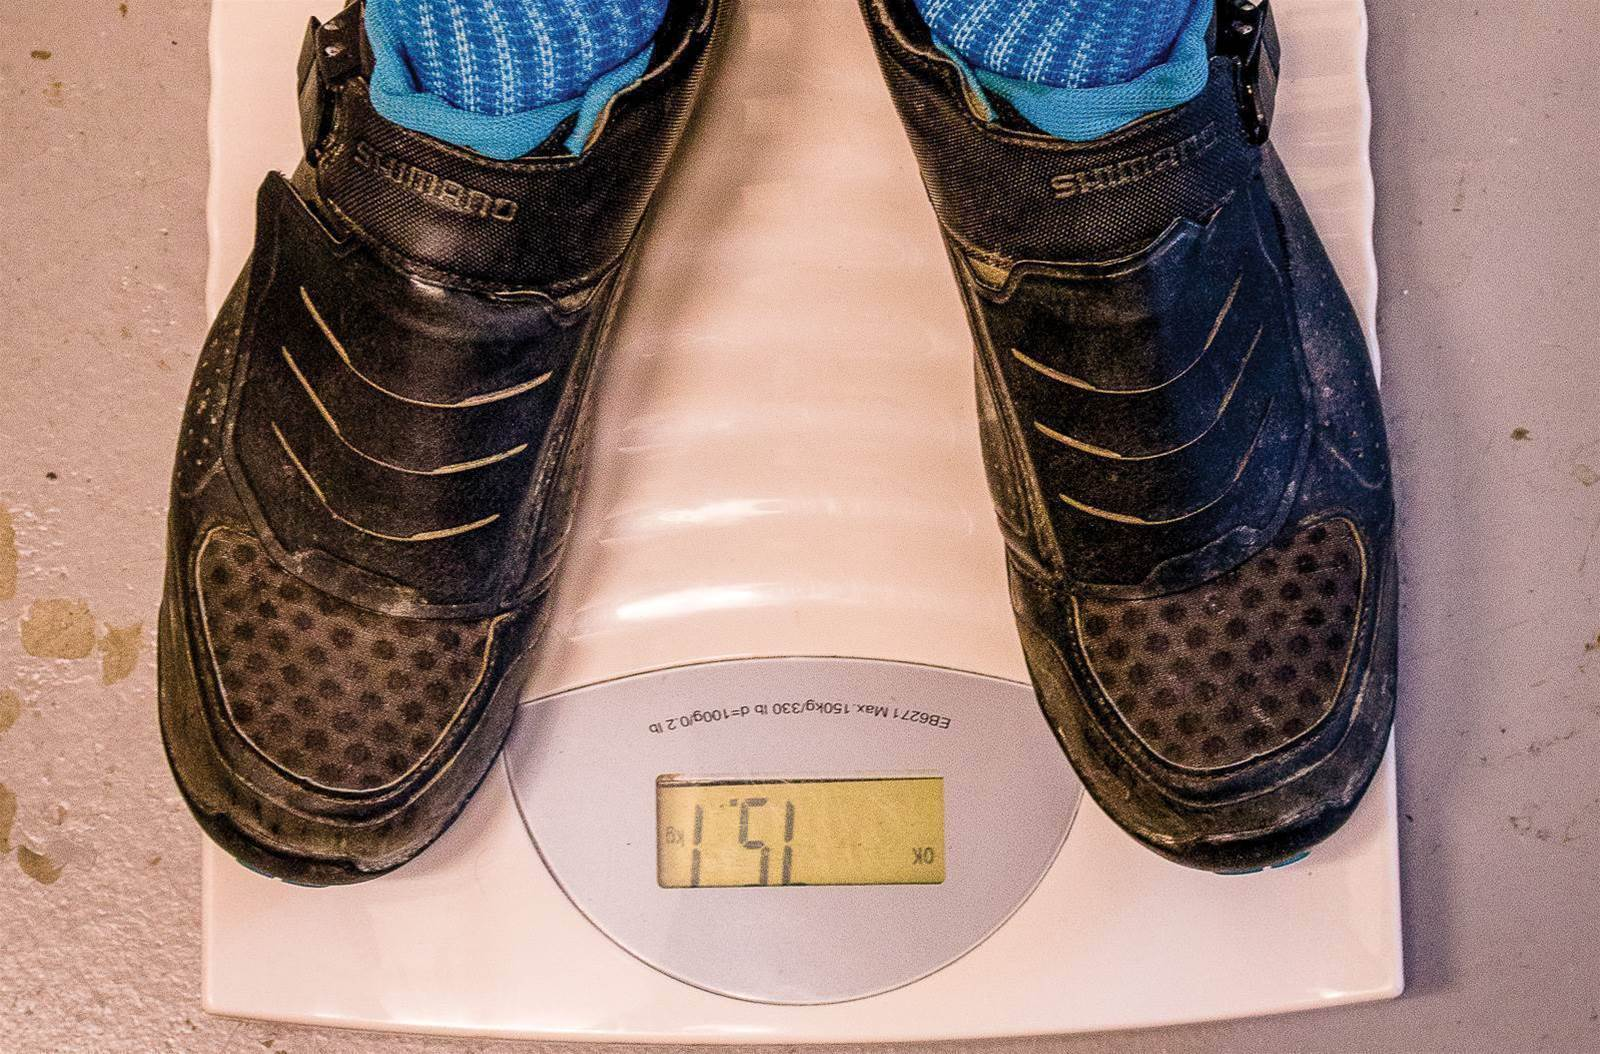 Losing weight without losing performance